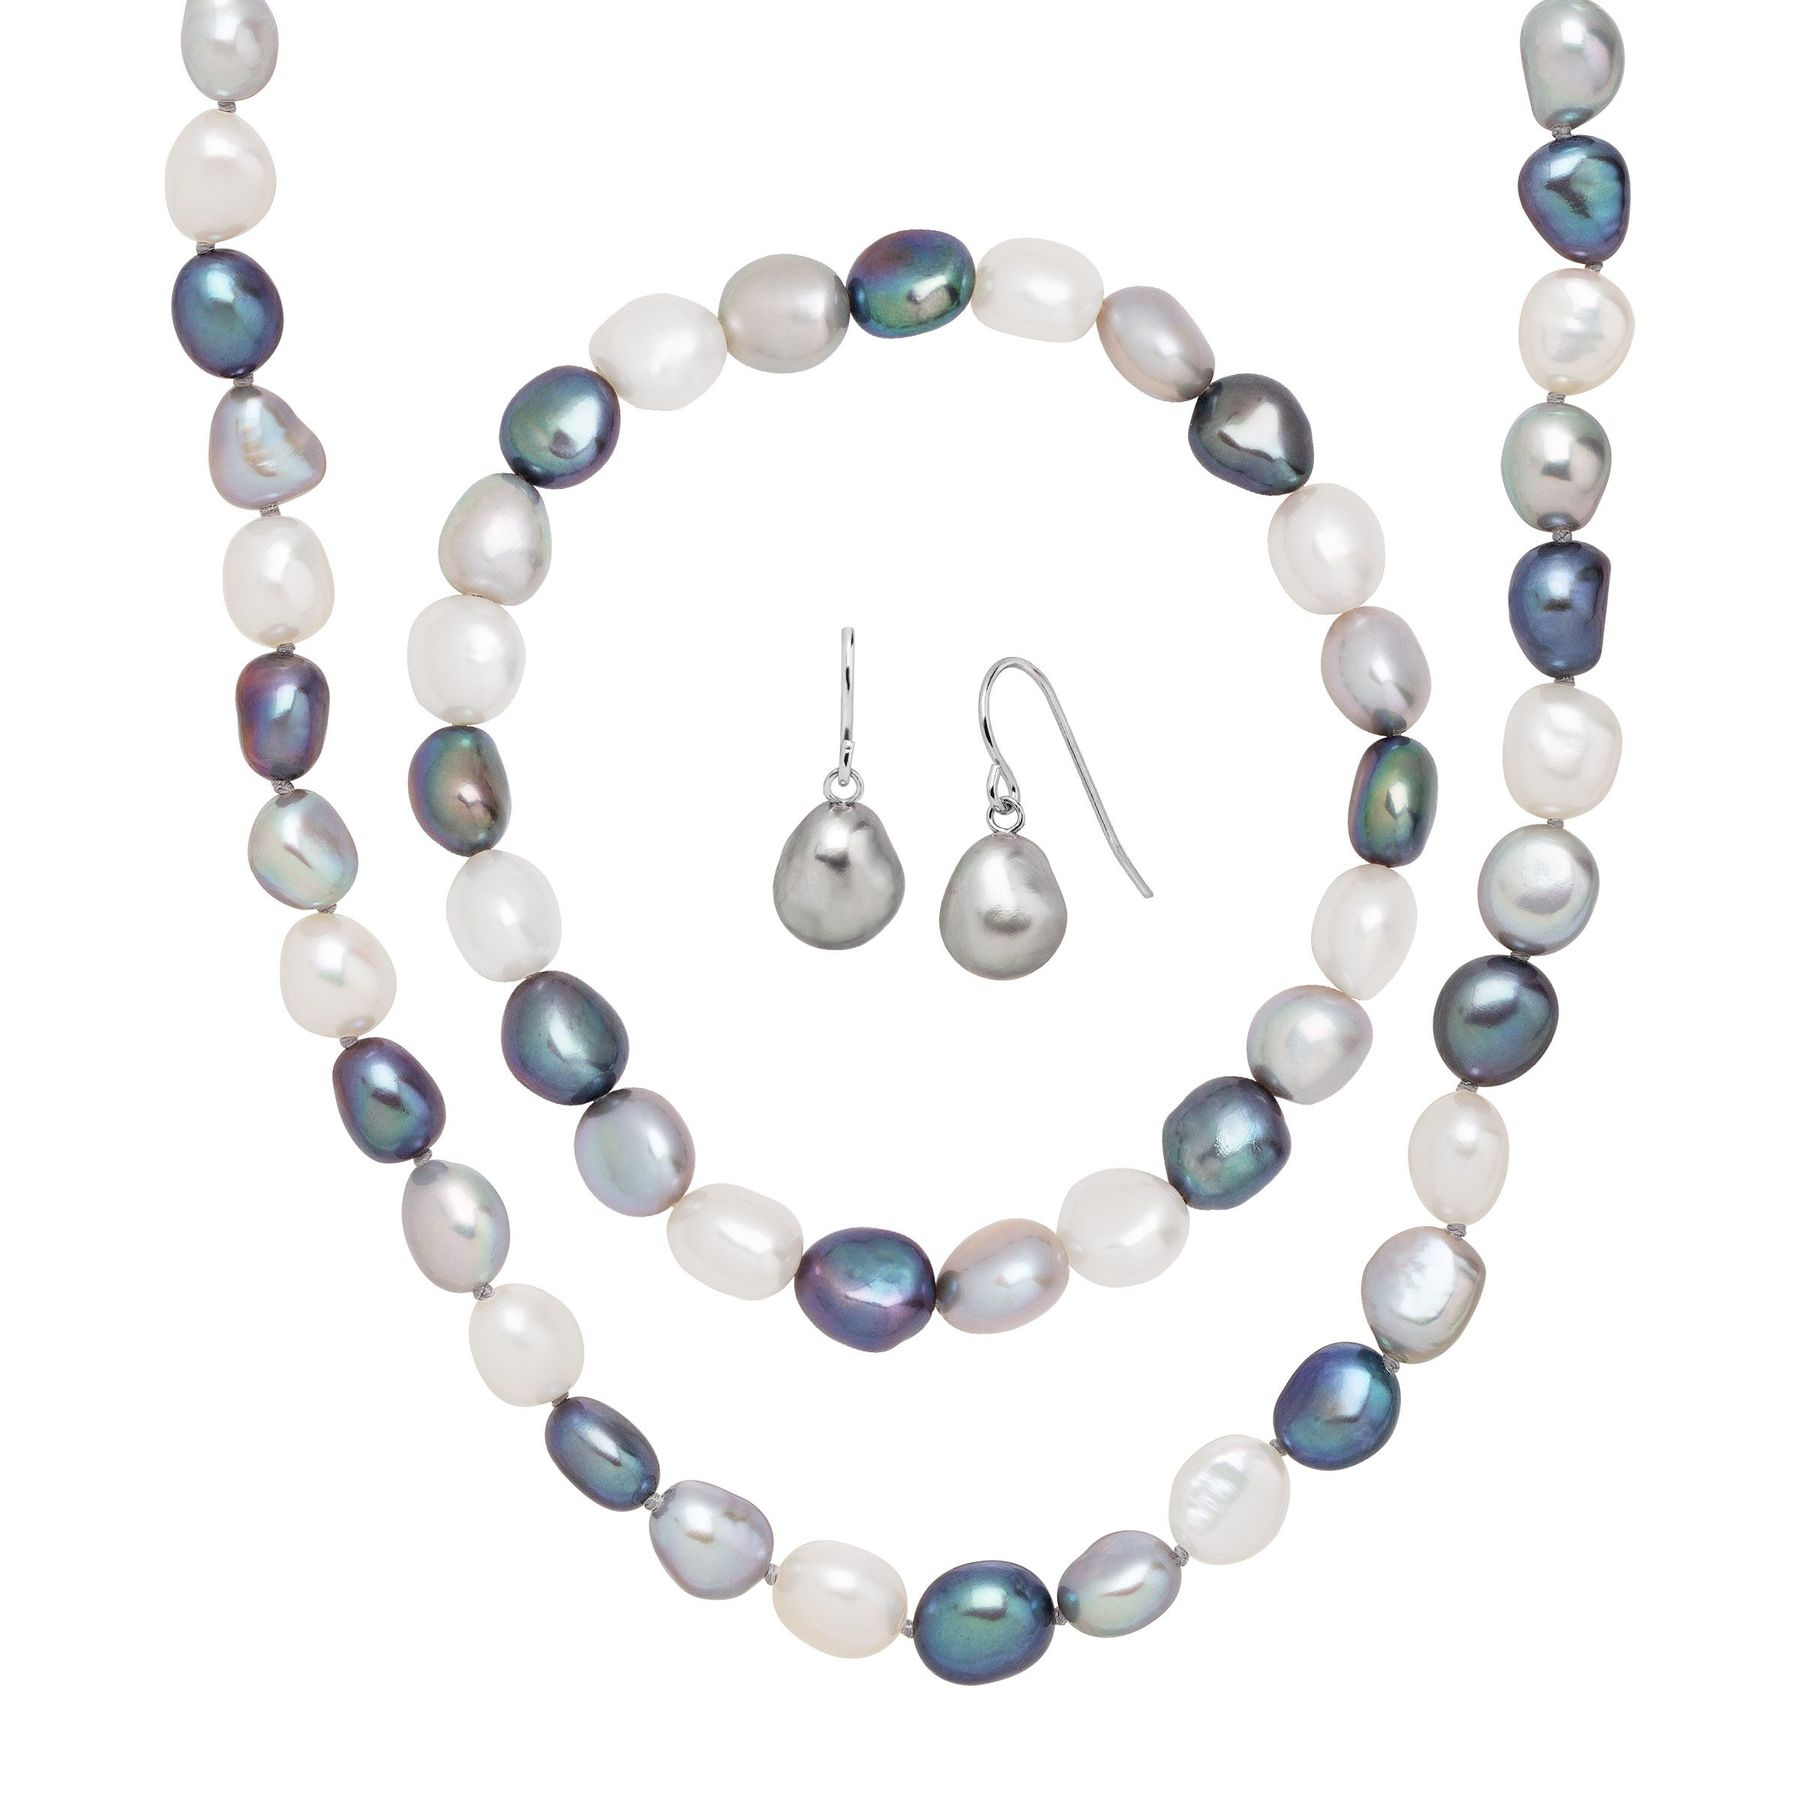 20 Inch Natural 7-8mm White Freshwater Pearl Necklace Earring Set New